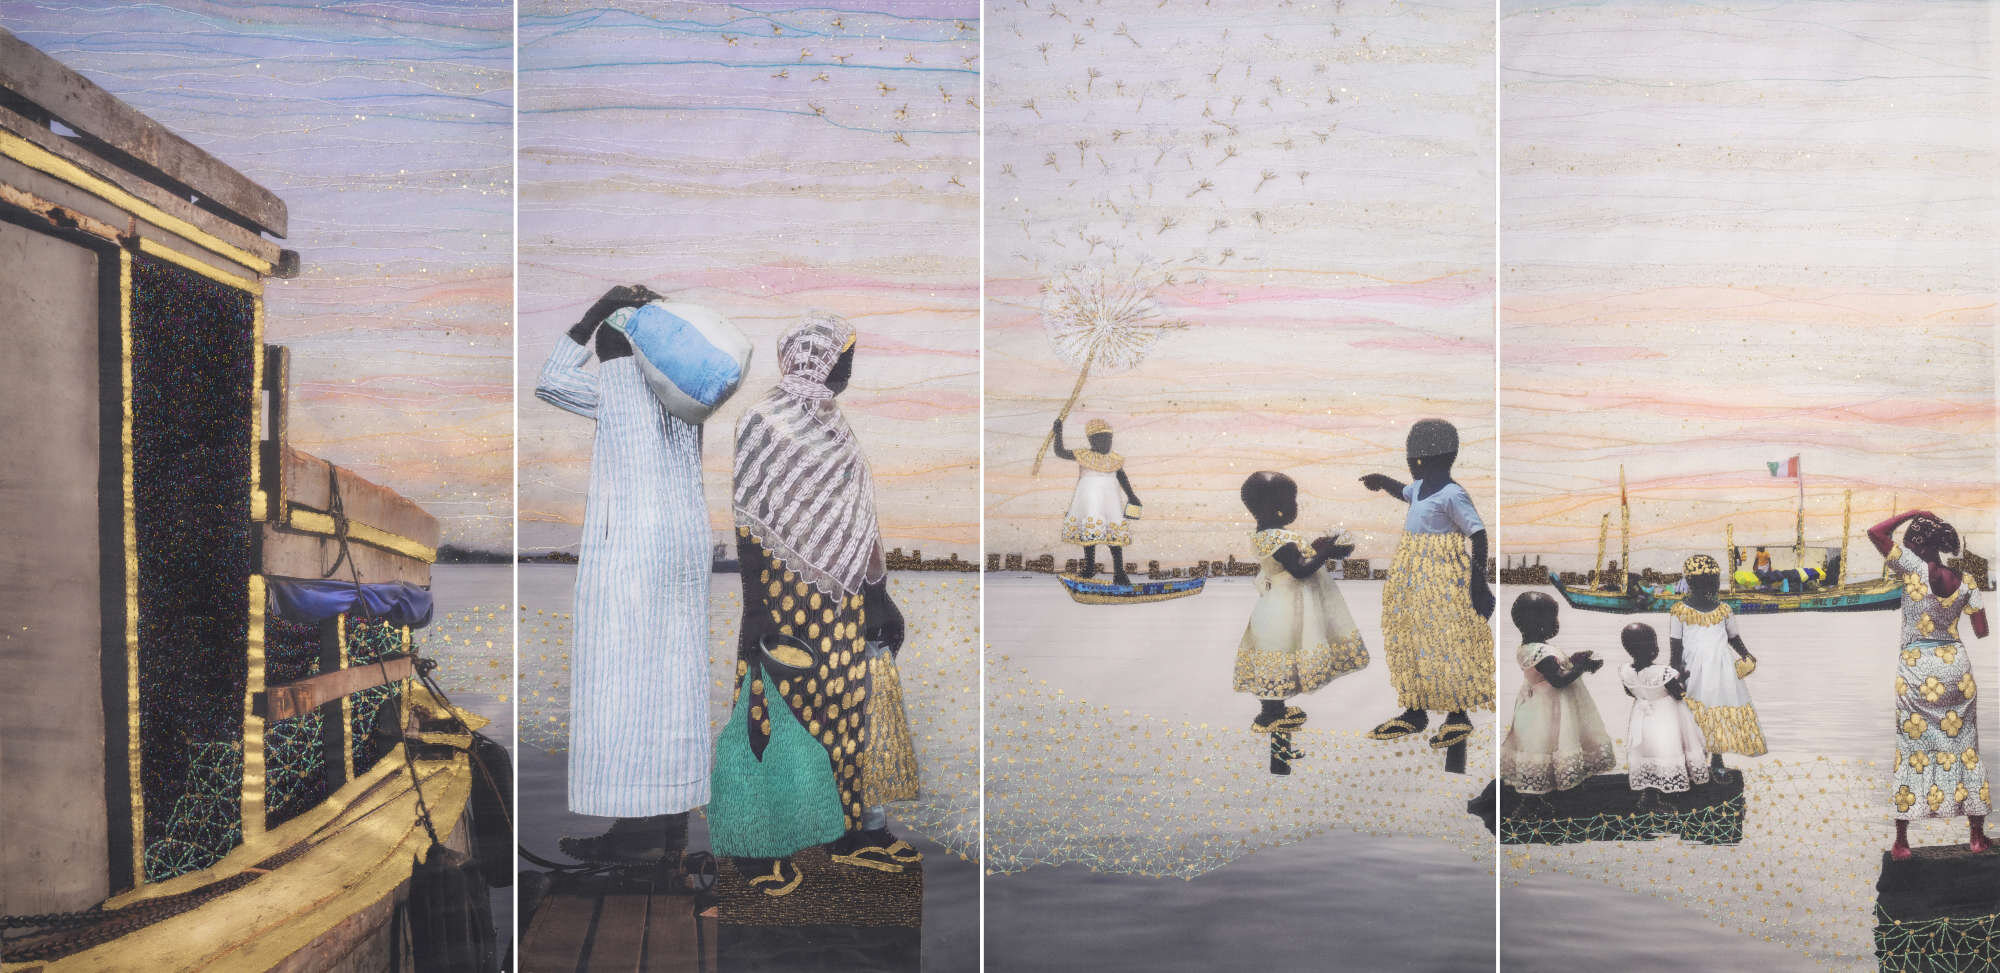 Joana Choumali, SOMETIMES I WONDER IF THEY CAN HEAR IT AS WELL (2019). Series ALBAHIAN, 2x1m. Image copyright the artist and courtesy Gallery 1957, Accra